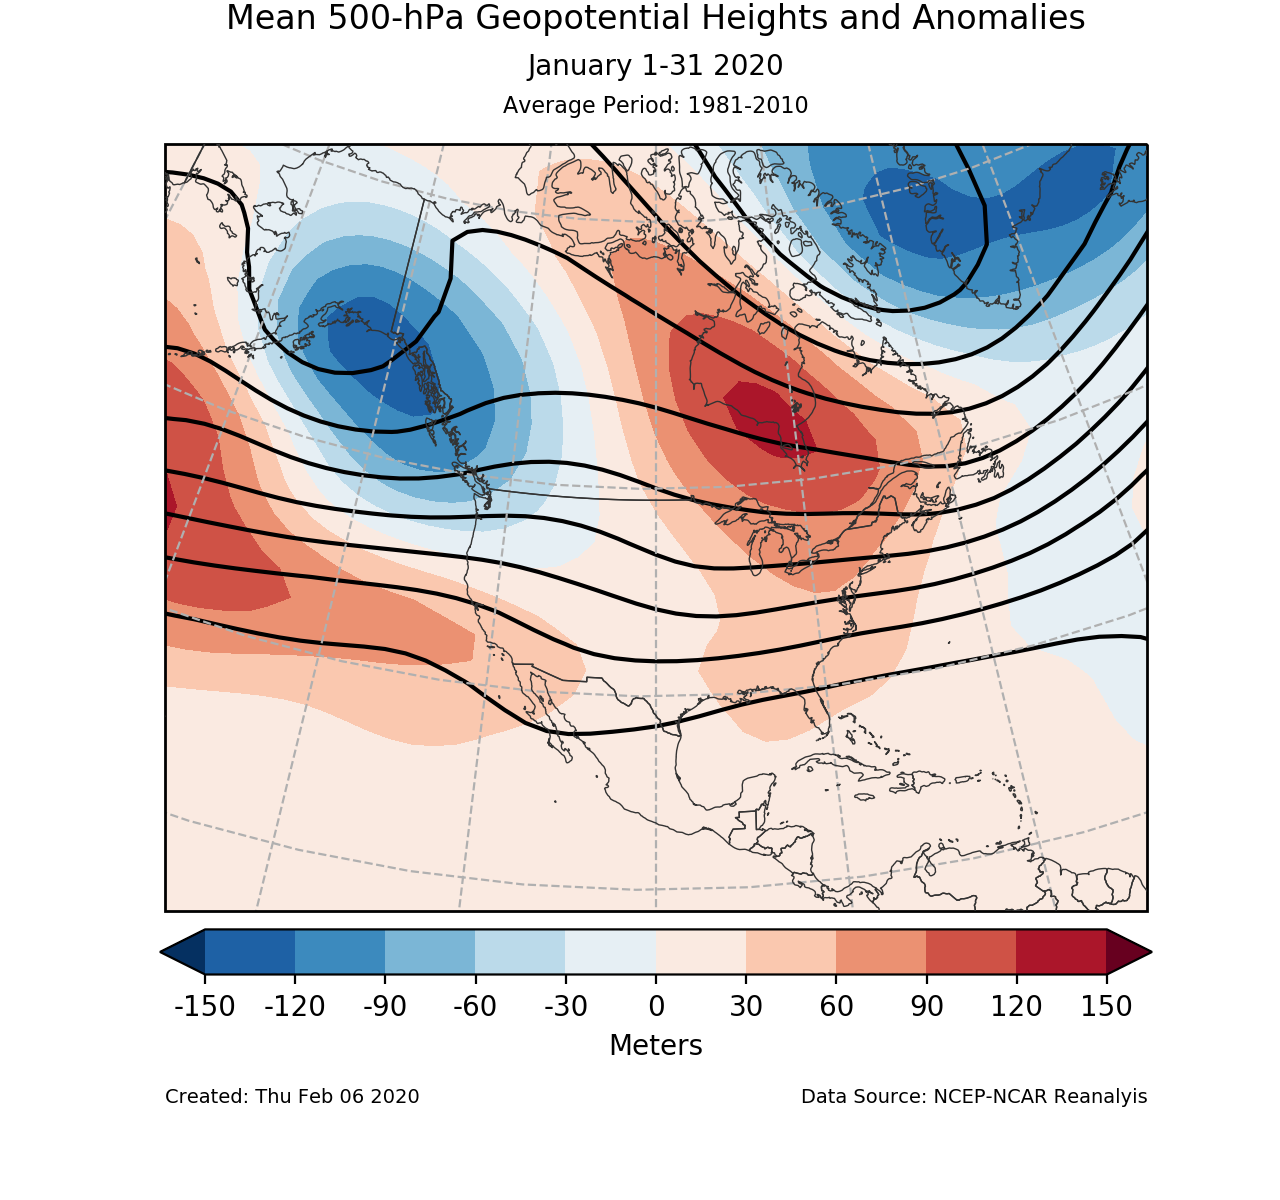 500-mb circulation anomalies for North America for January 2020